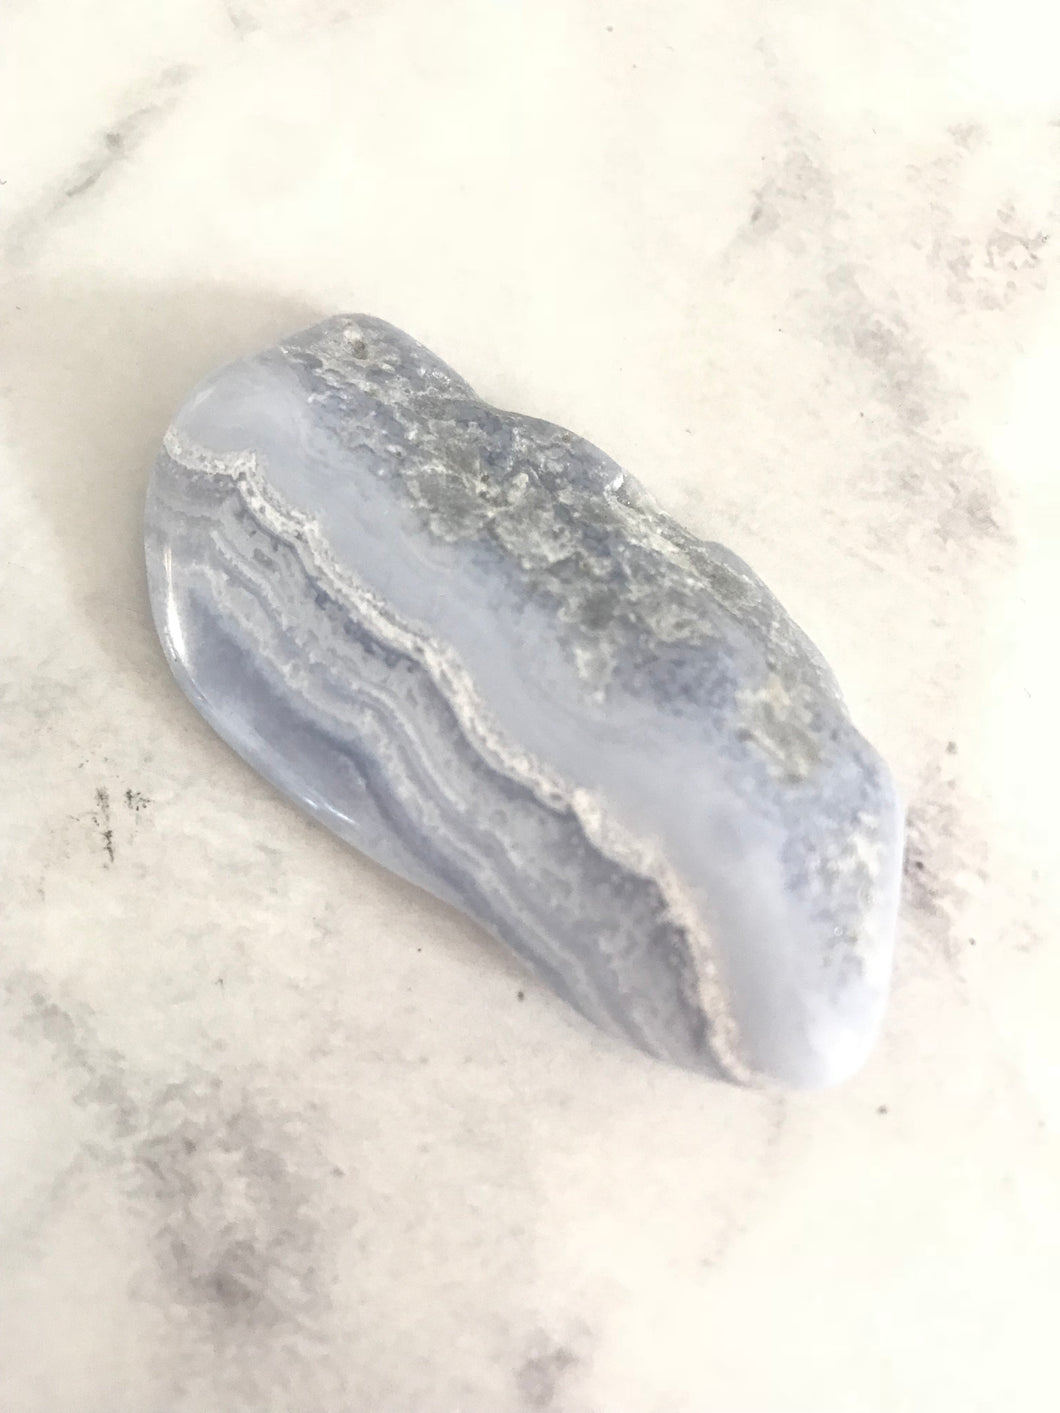 Crystal - BLUE LACE AGATE #512